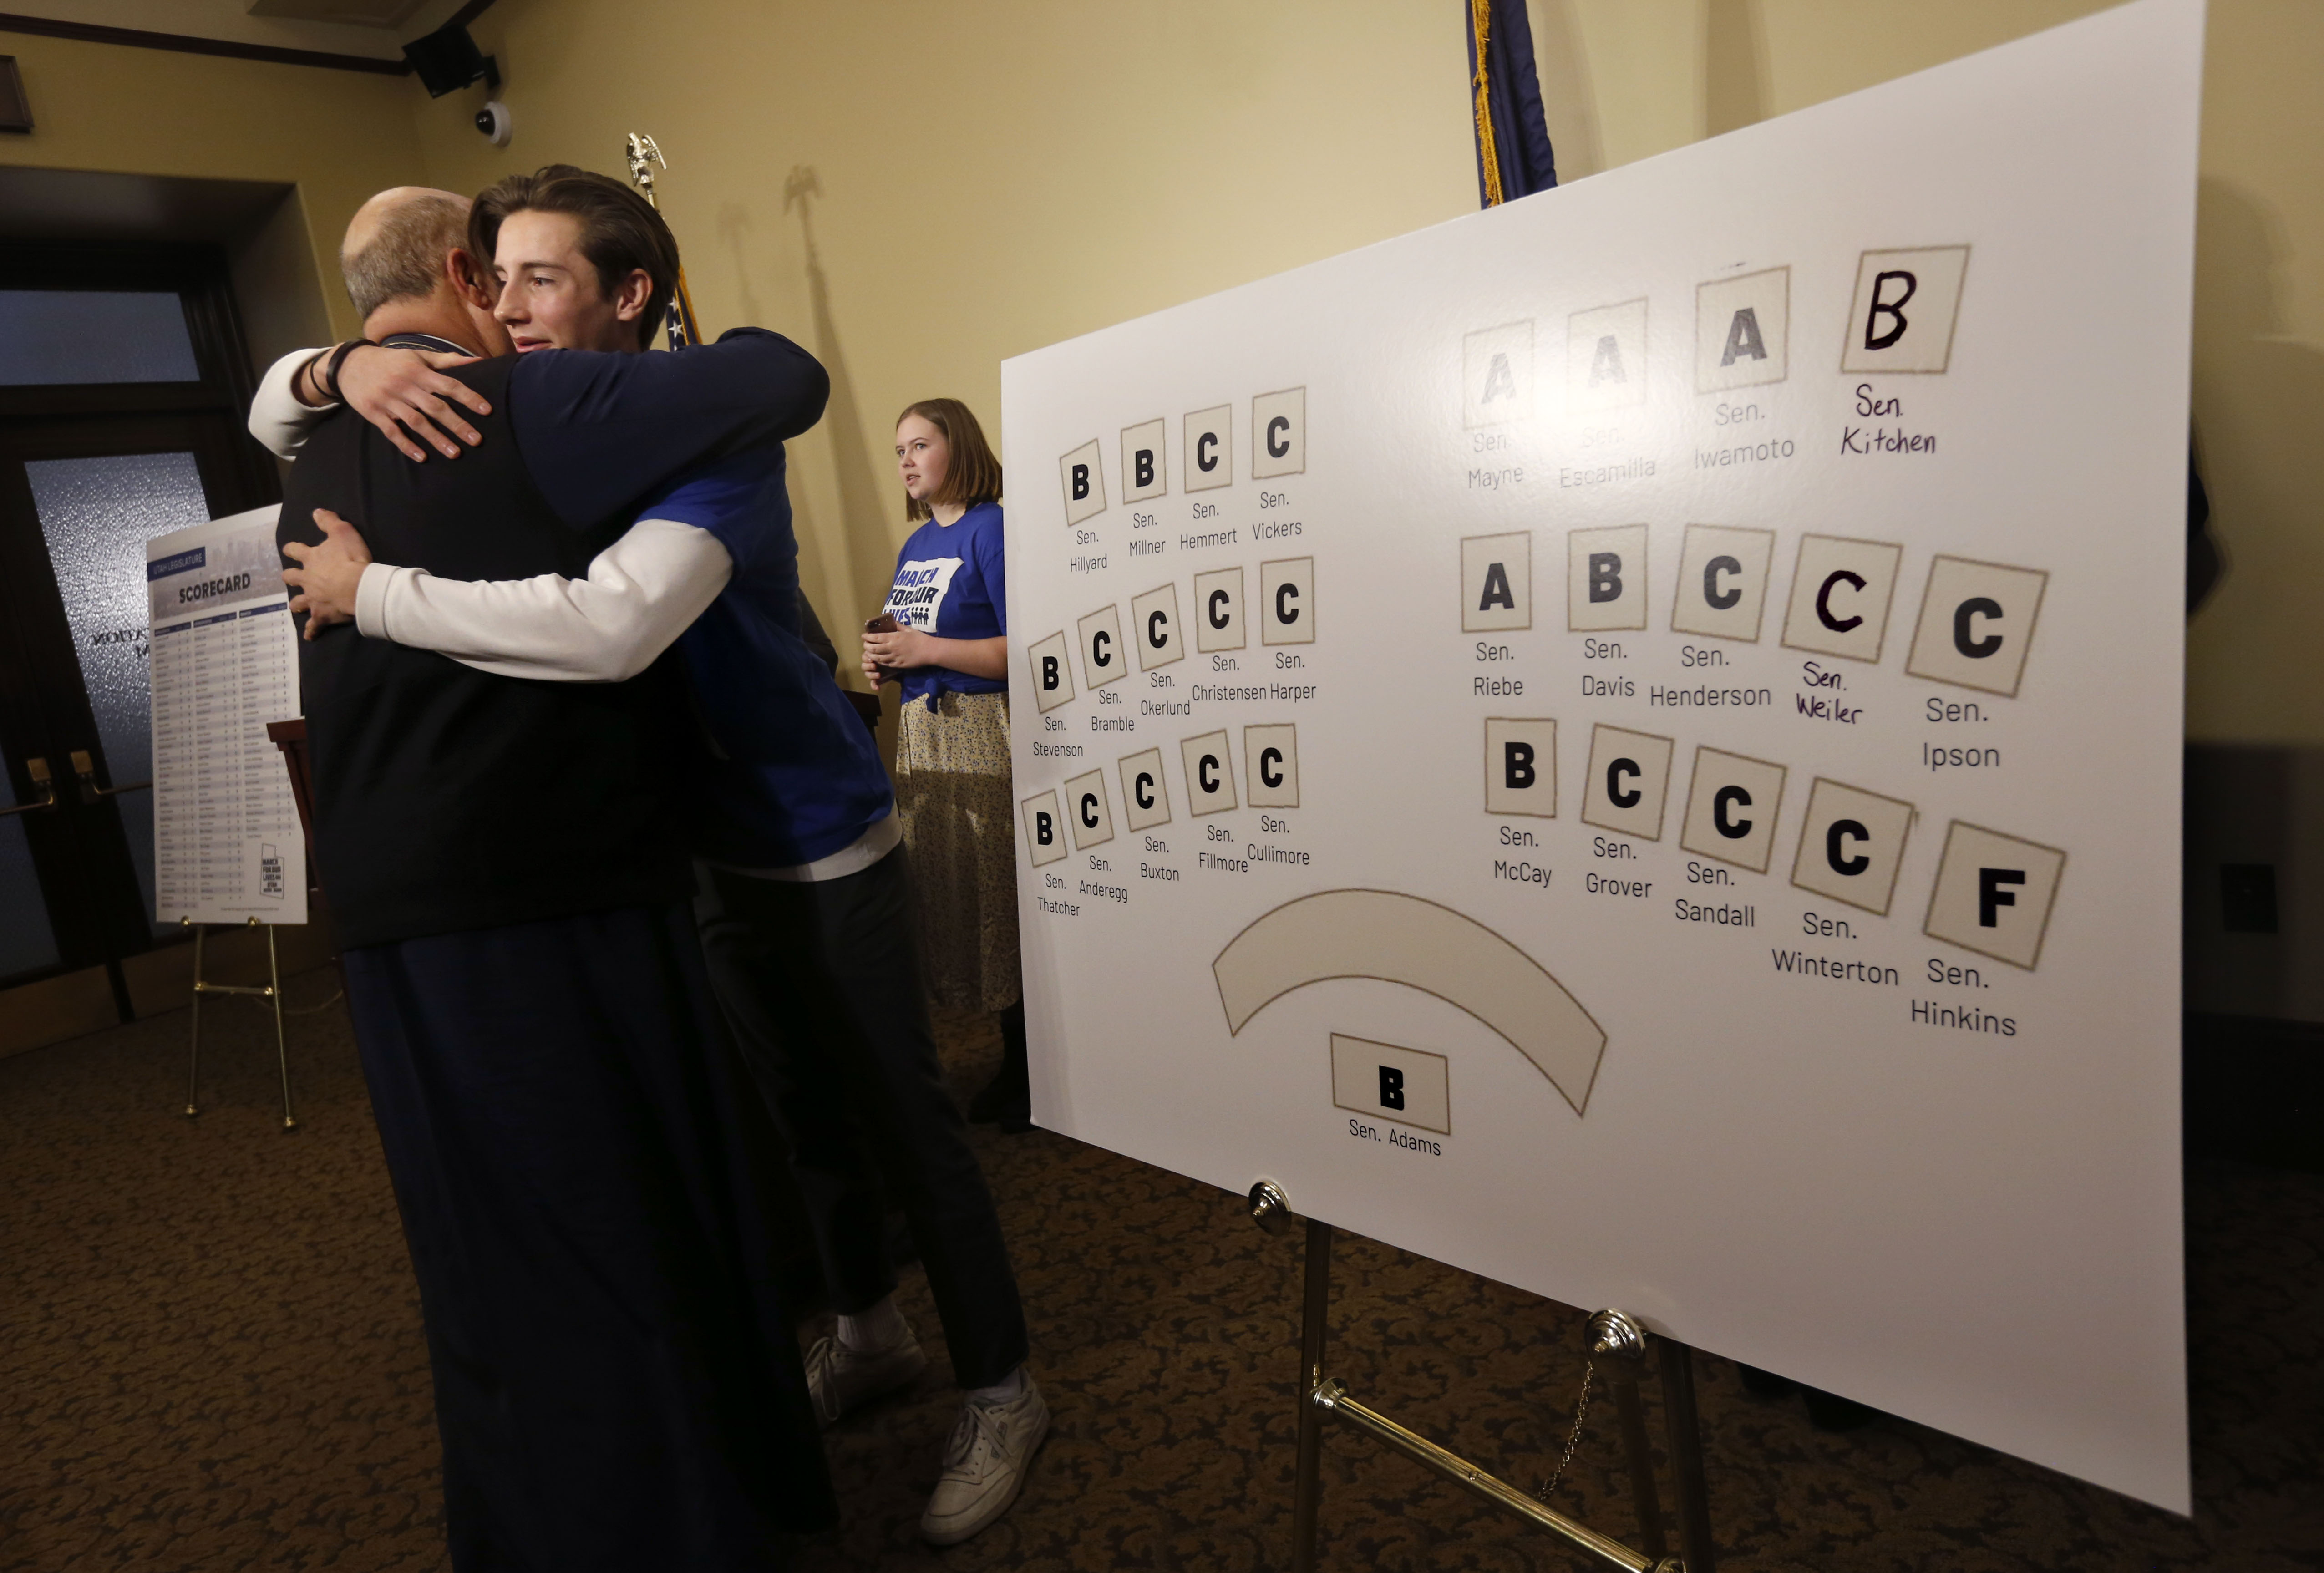 Father Elias Koucos, of St. Anna Greek Orthodox Church, hugs Andoni Telonidis, a member of March for Our Lives Utah and a senior at West High School, after a press conference at the Capitol in Salt Lake City on Wednesday, Jan. 15, 2020, where high school students voiced their concerns about gun violence and presented a report card for Utah legislators based on their voting records during the 2019 legislative session.